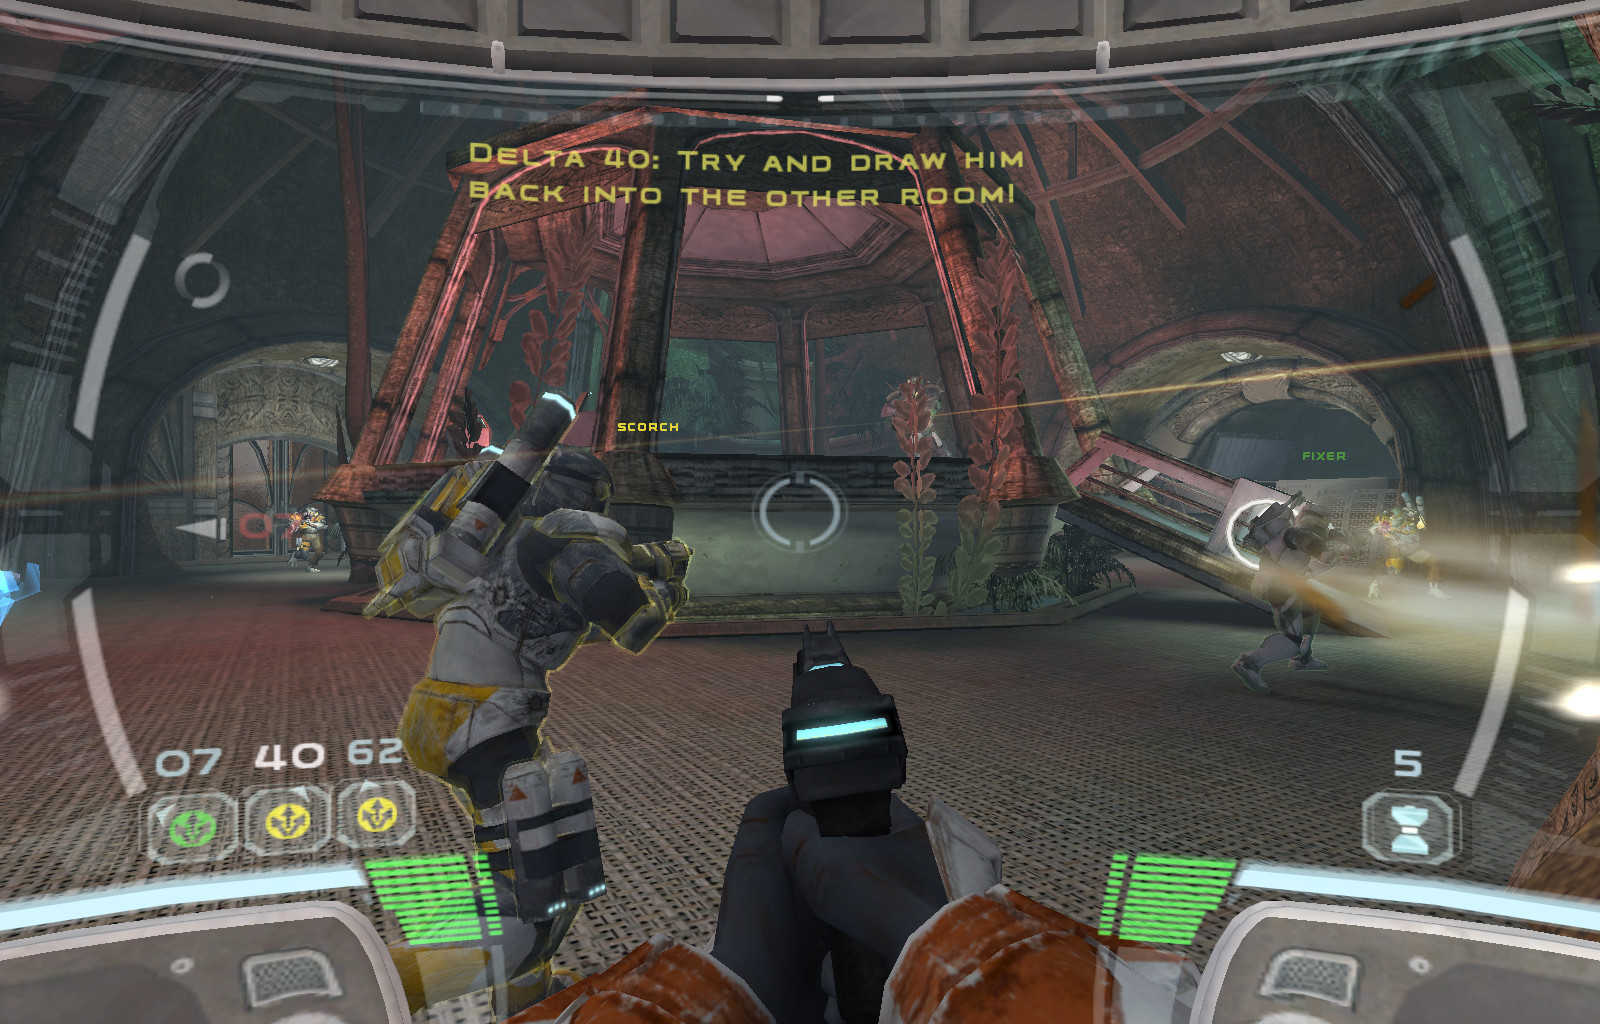 Star wars games playstation 2 halo 2 full game download